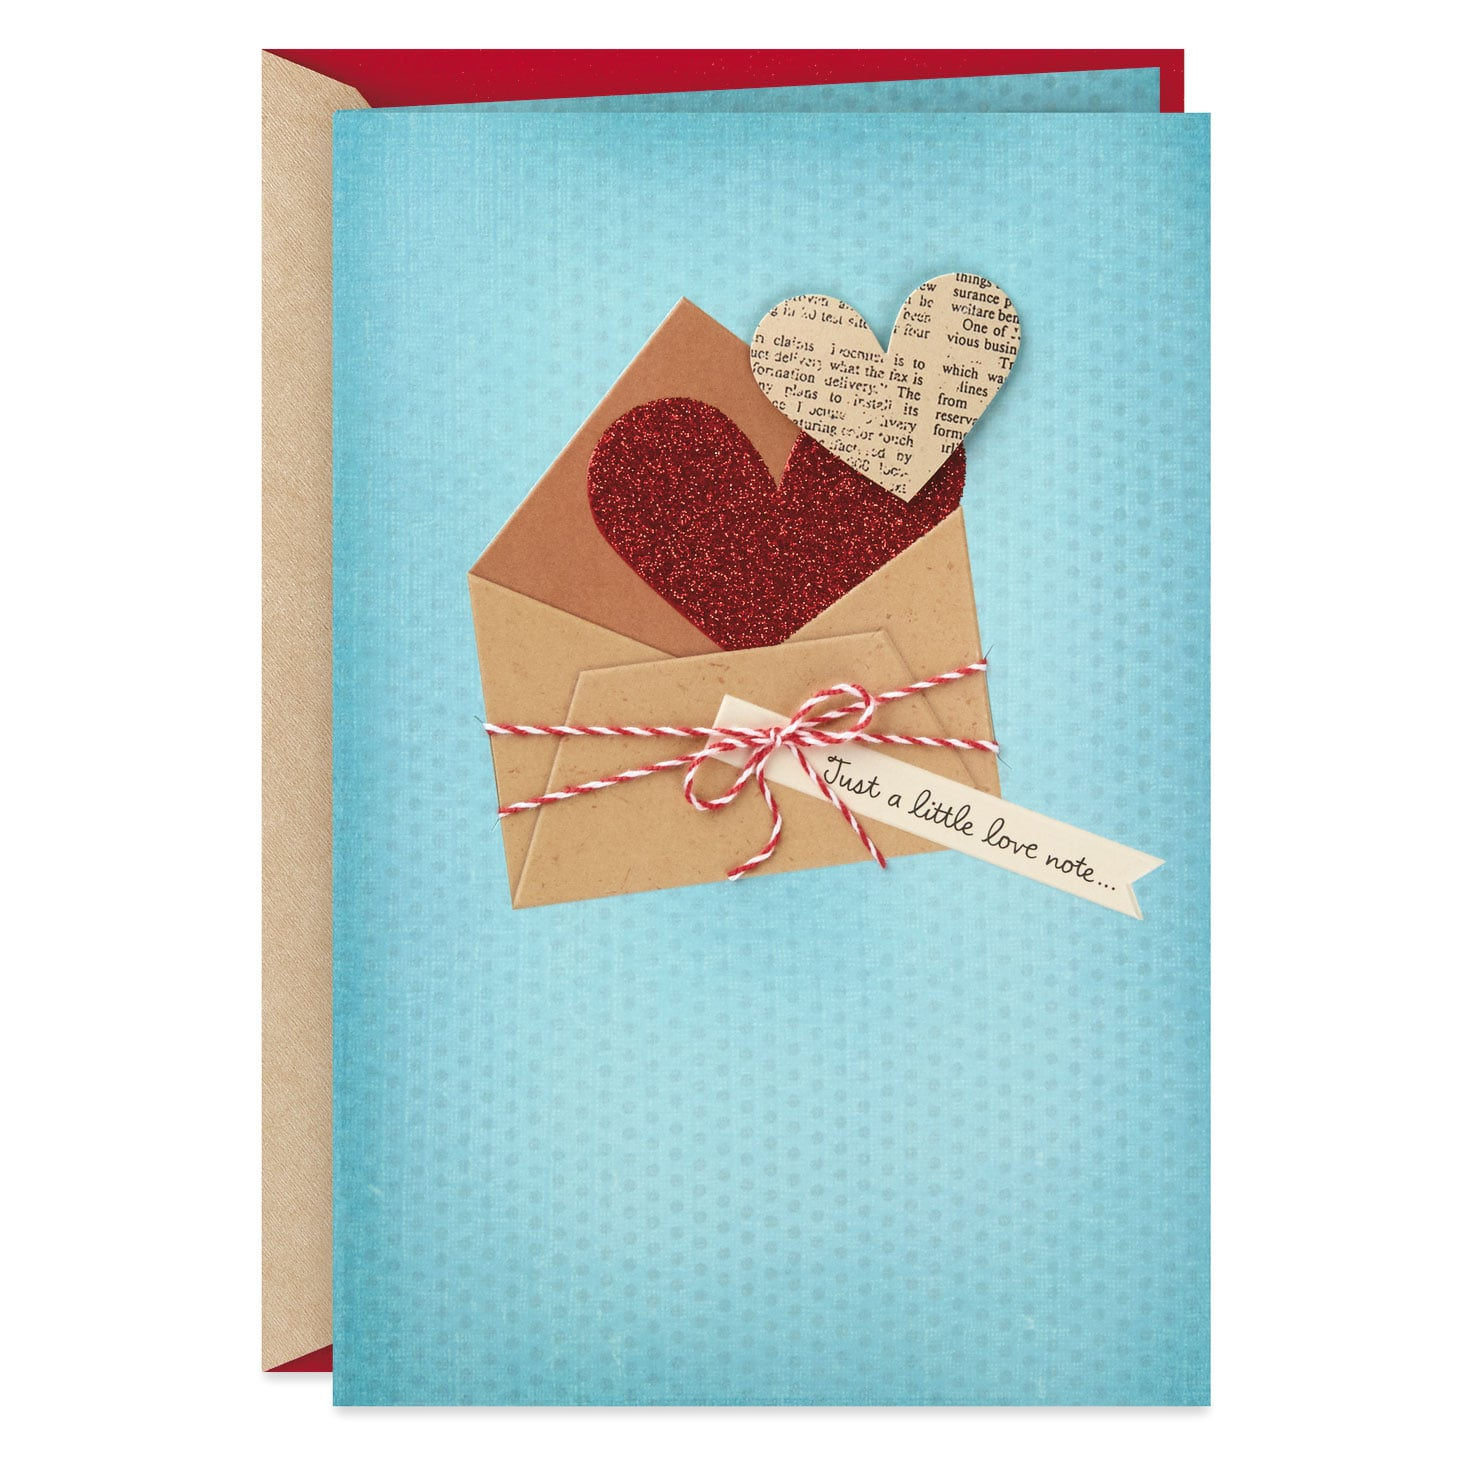 Dating hallmark greeting cards